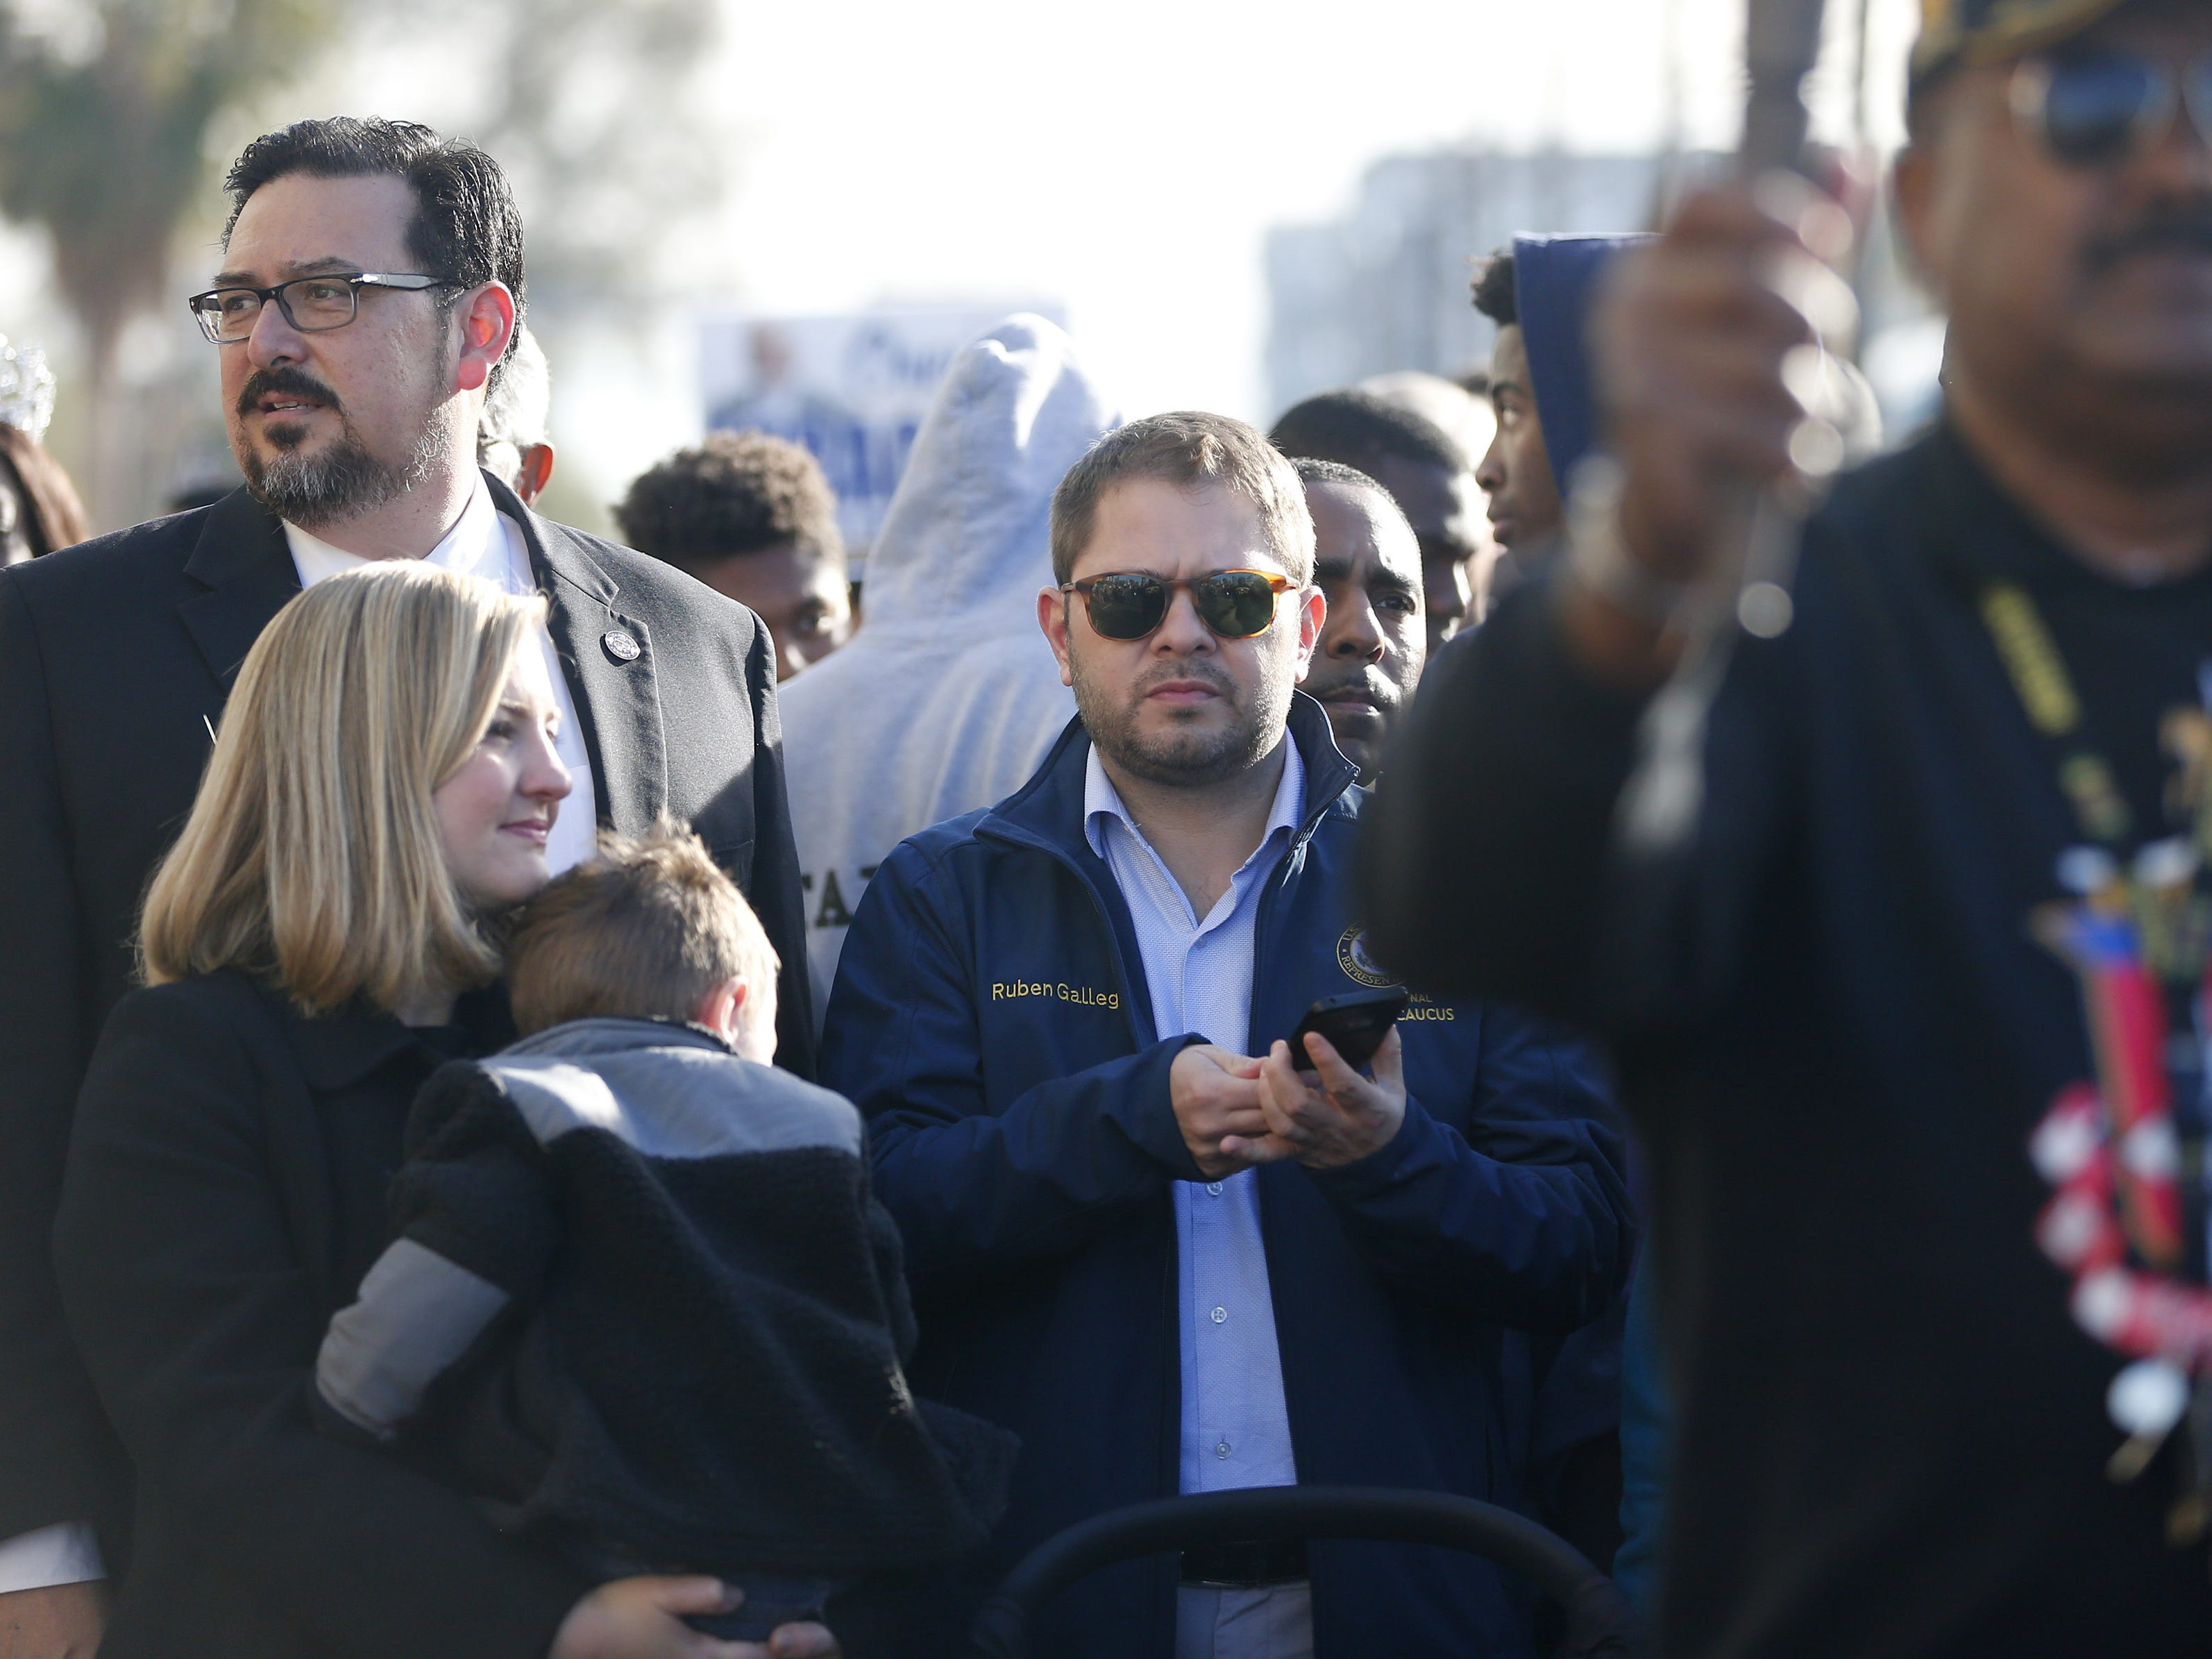 Maricopa County Recorder Adrian Fontes (left), Phoenix City Councilwoman Kate Gallego (center) and U.S. Rep Ruben Gallego (D-Ariz) march with others honoring Dr. Martin Luther King in downtown Phoenix, Ariz. January 21, 2019. The march is symbolic of Dr. King's revolutionary 1968 march.